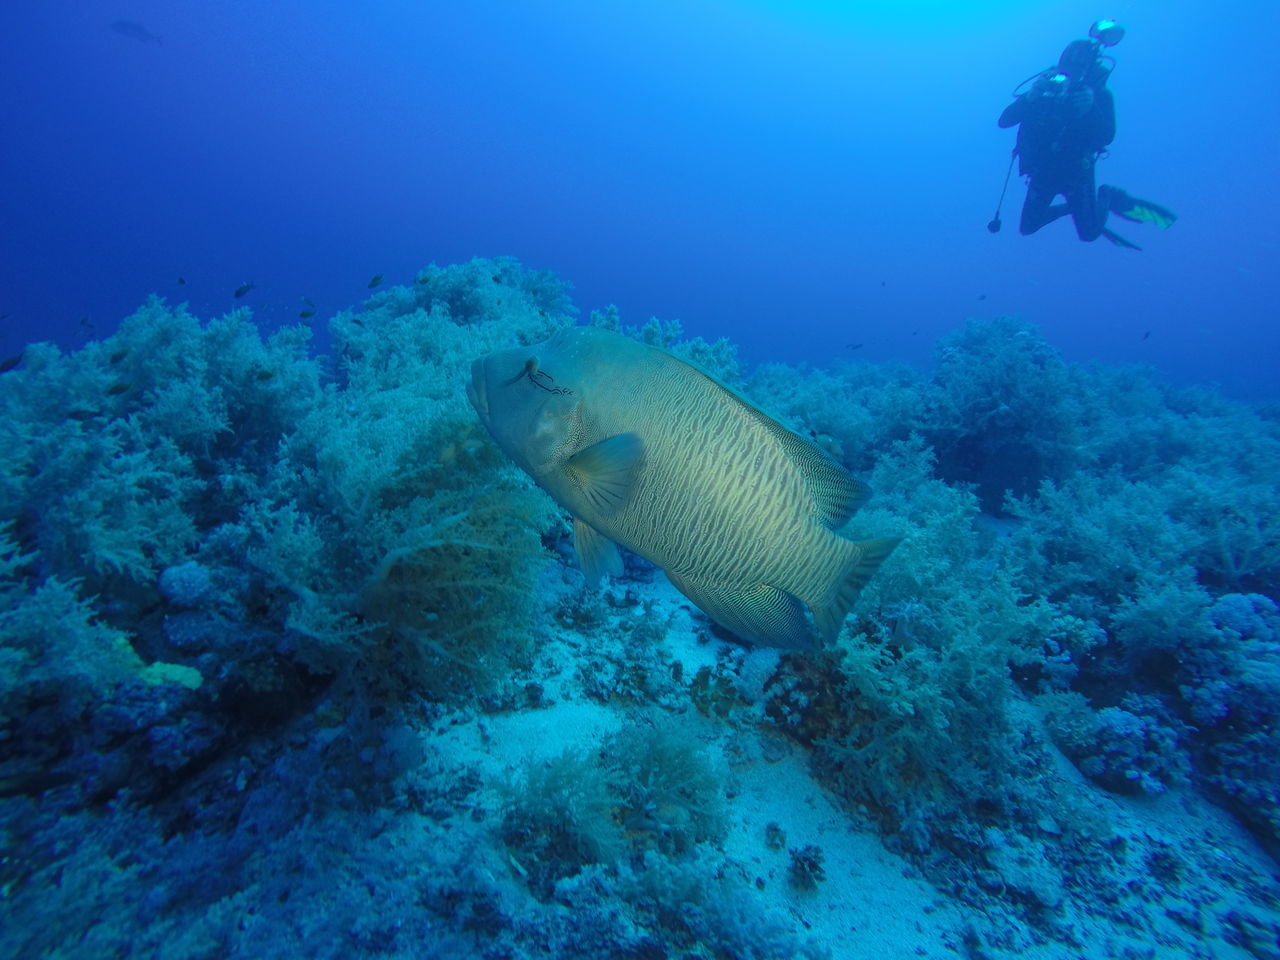 A large napoleon fish passing by while diving at the Daedalus Reef in the Red Sea, Egypt Adventure Animal Wildlife Beauty In Nature Diving Egypt Exploration Fish Fishing Napoleon Nature Naturelovers Ocean Red Sea Reef Scenics SCUBA Scuba Diving Scuba Diving Sea Sea Life UnderSea Underwater Water